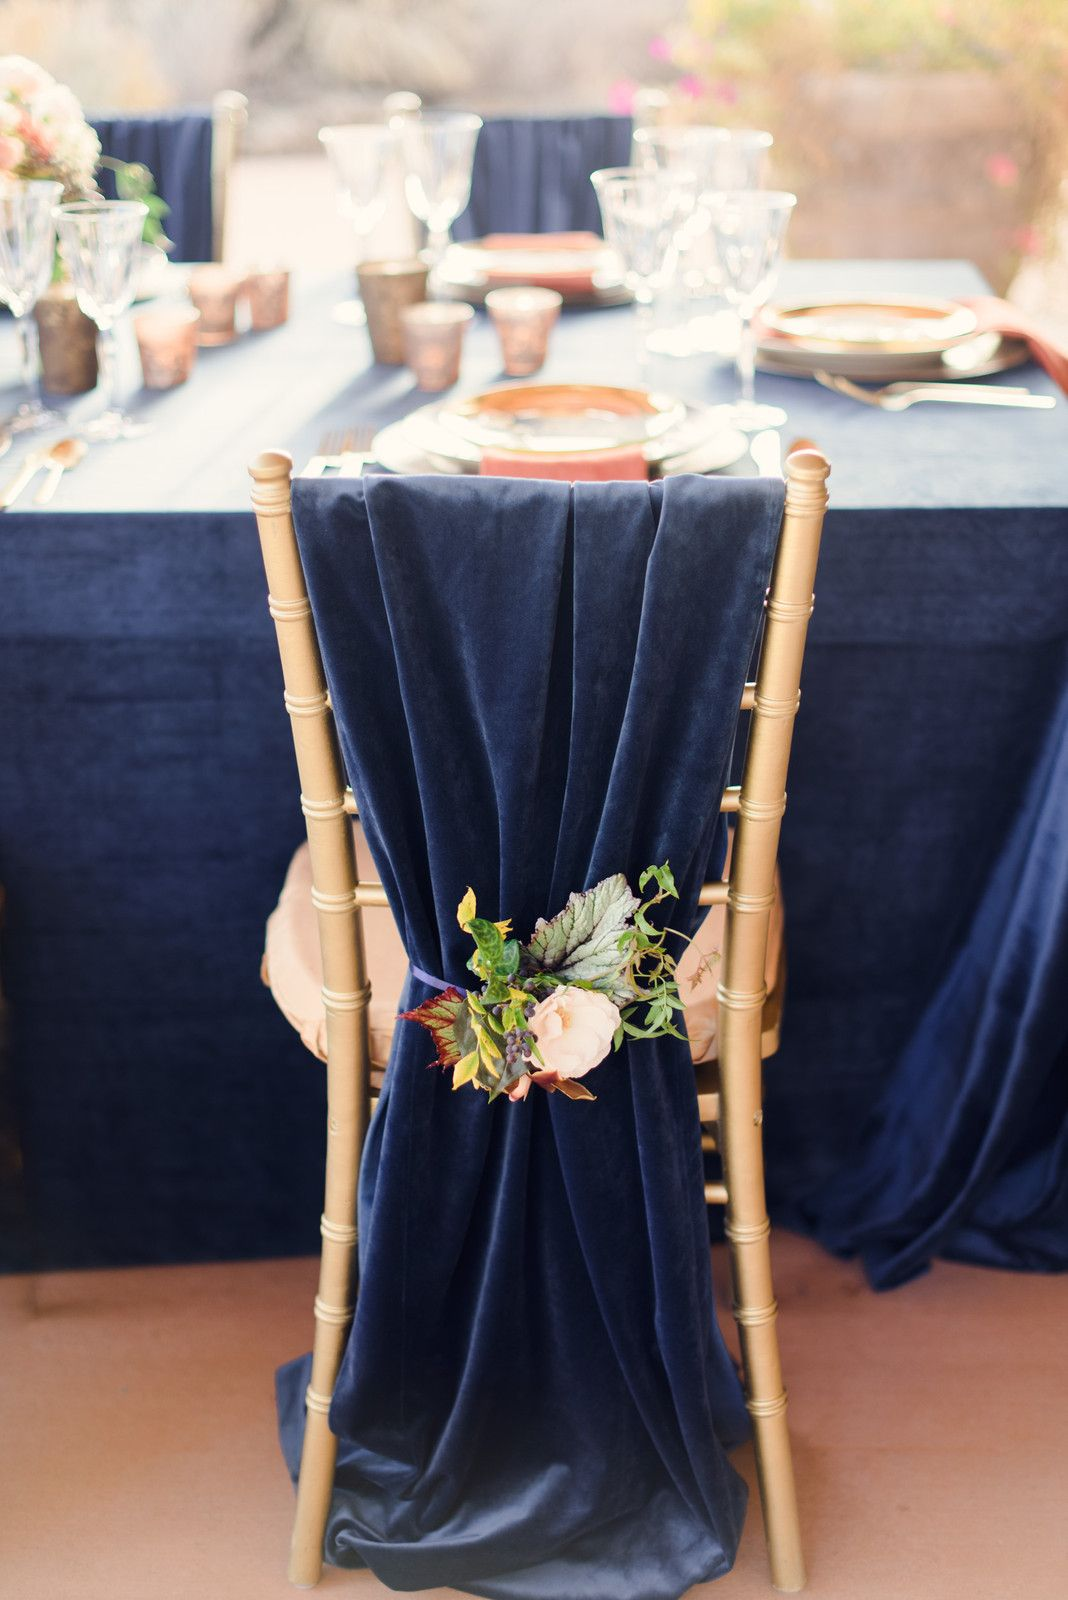 Wedding chair decorations diy   Awesome Ideas to Decorate Your Wedding Chairs  Wedding day